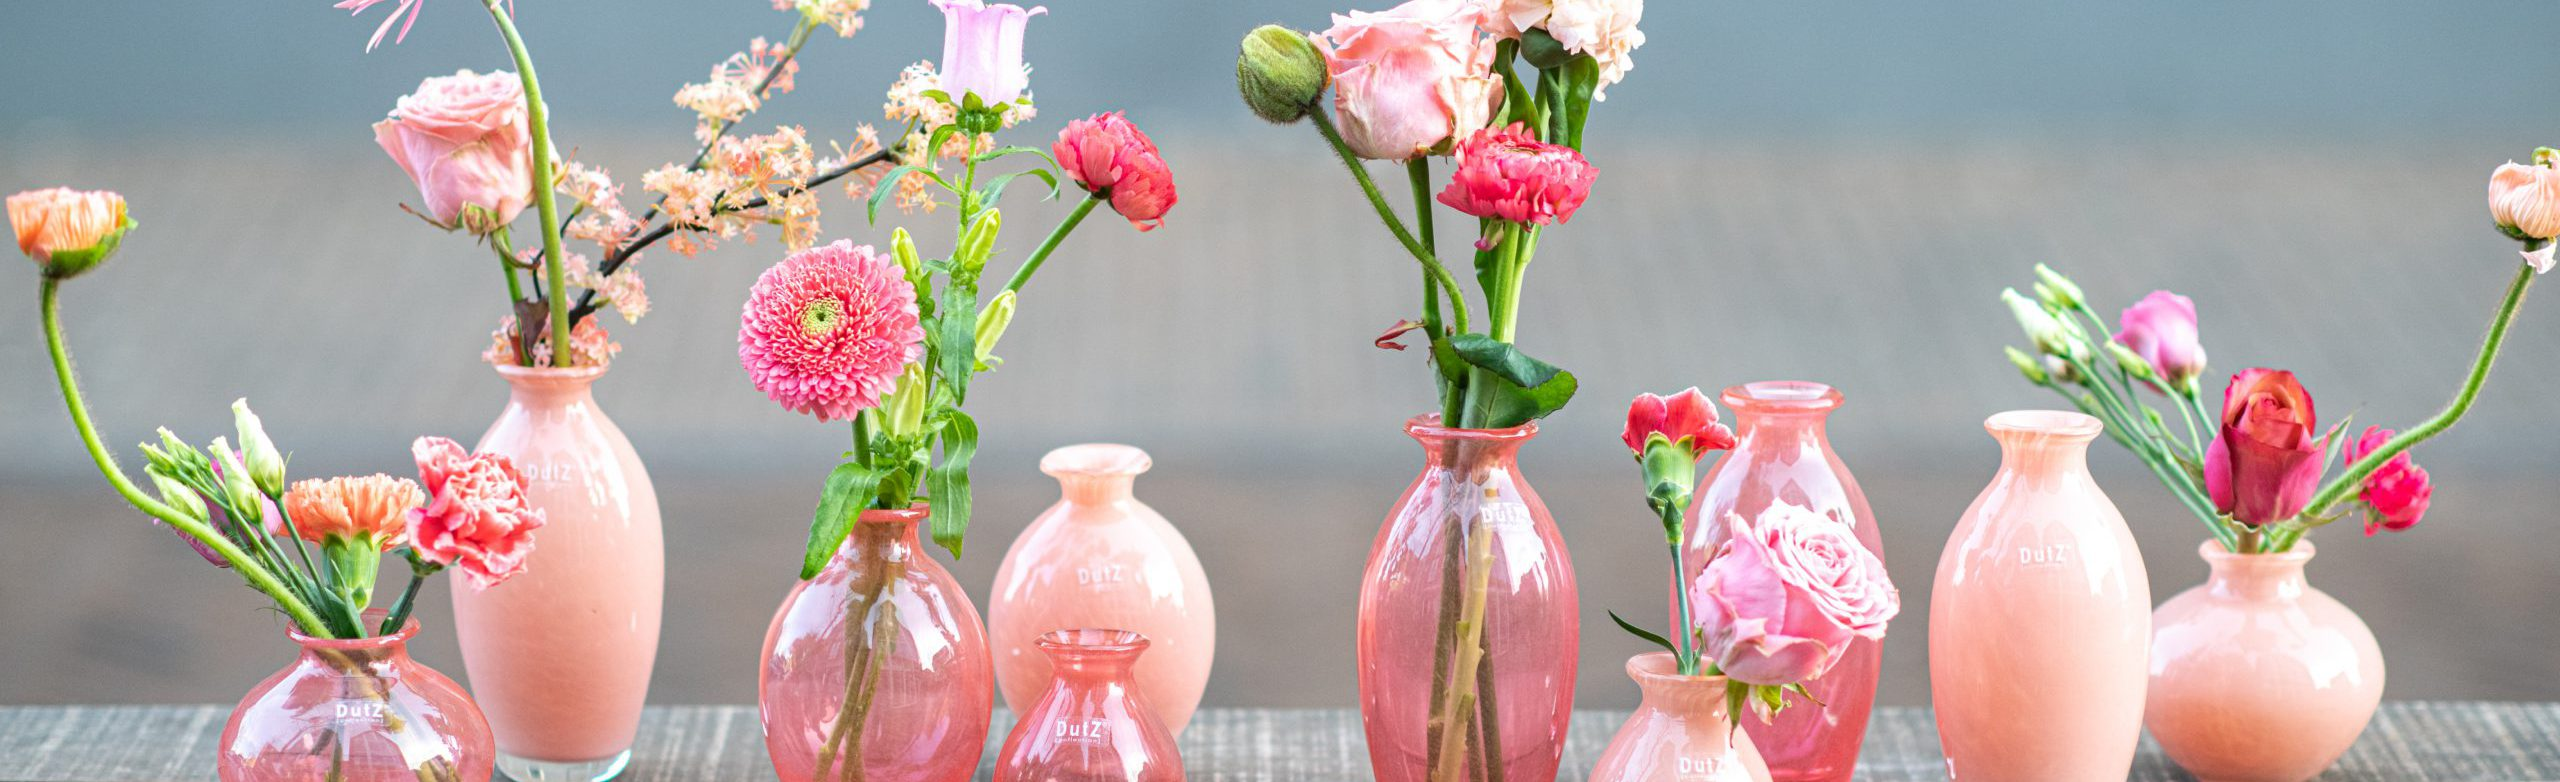 Nadiel vases in different shades of pink on a table. Filled with pink flowers